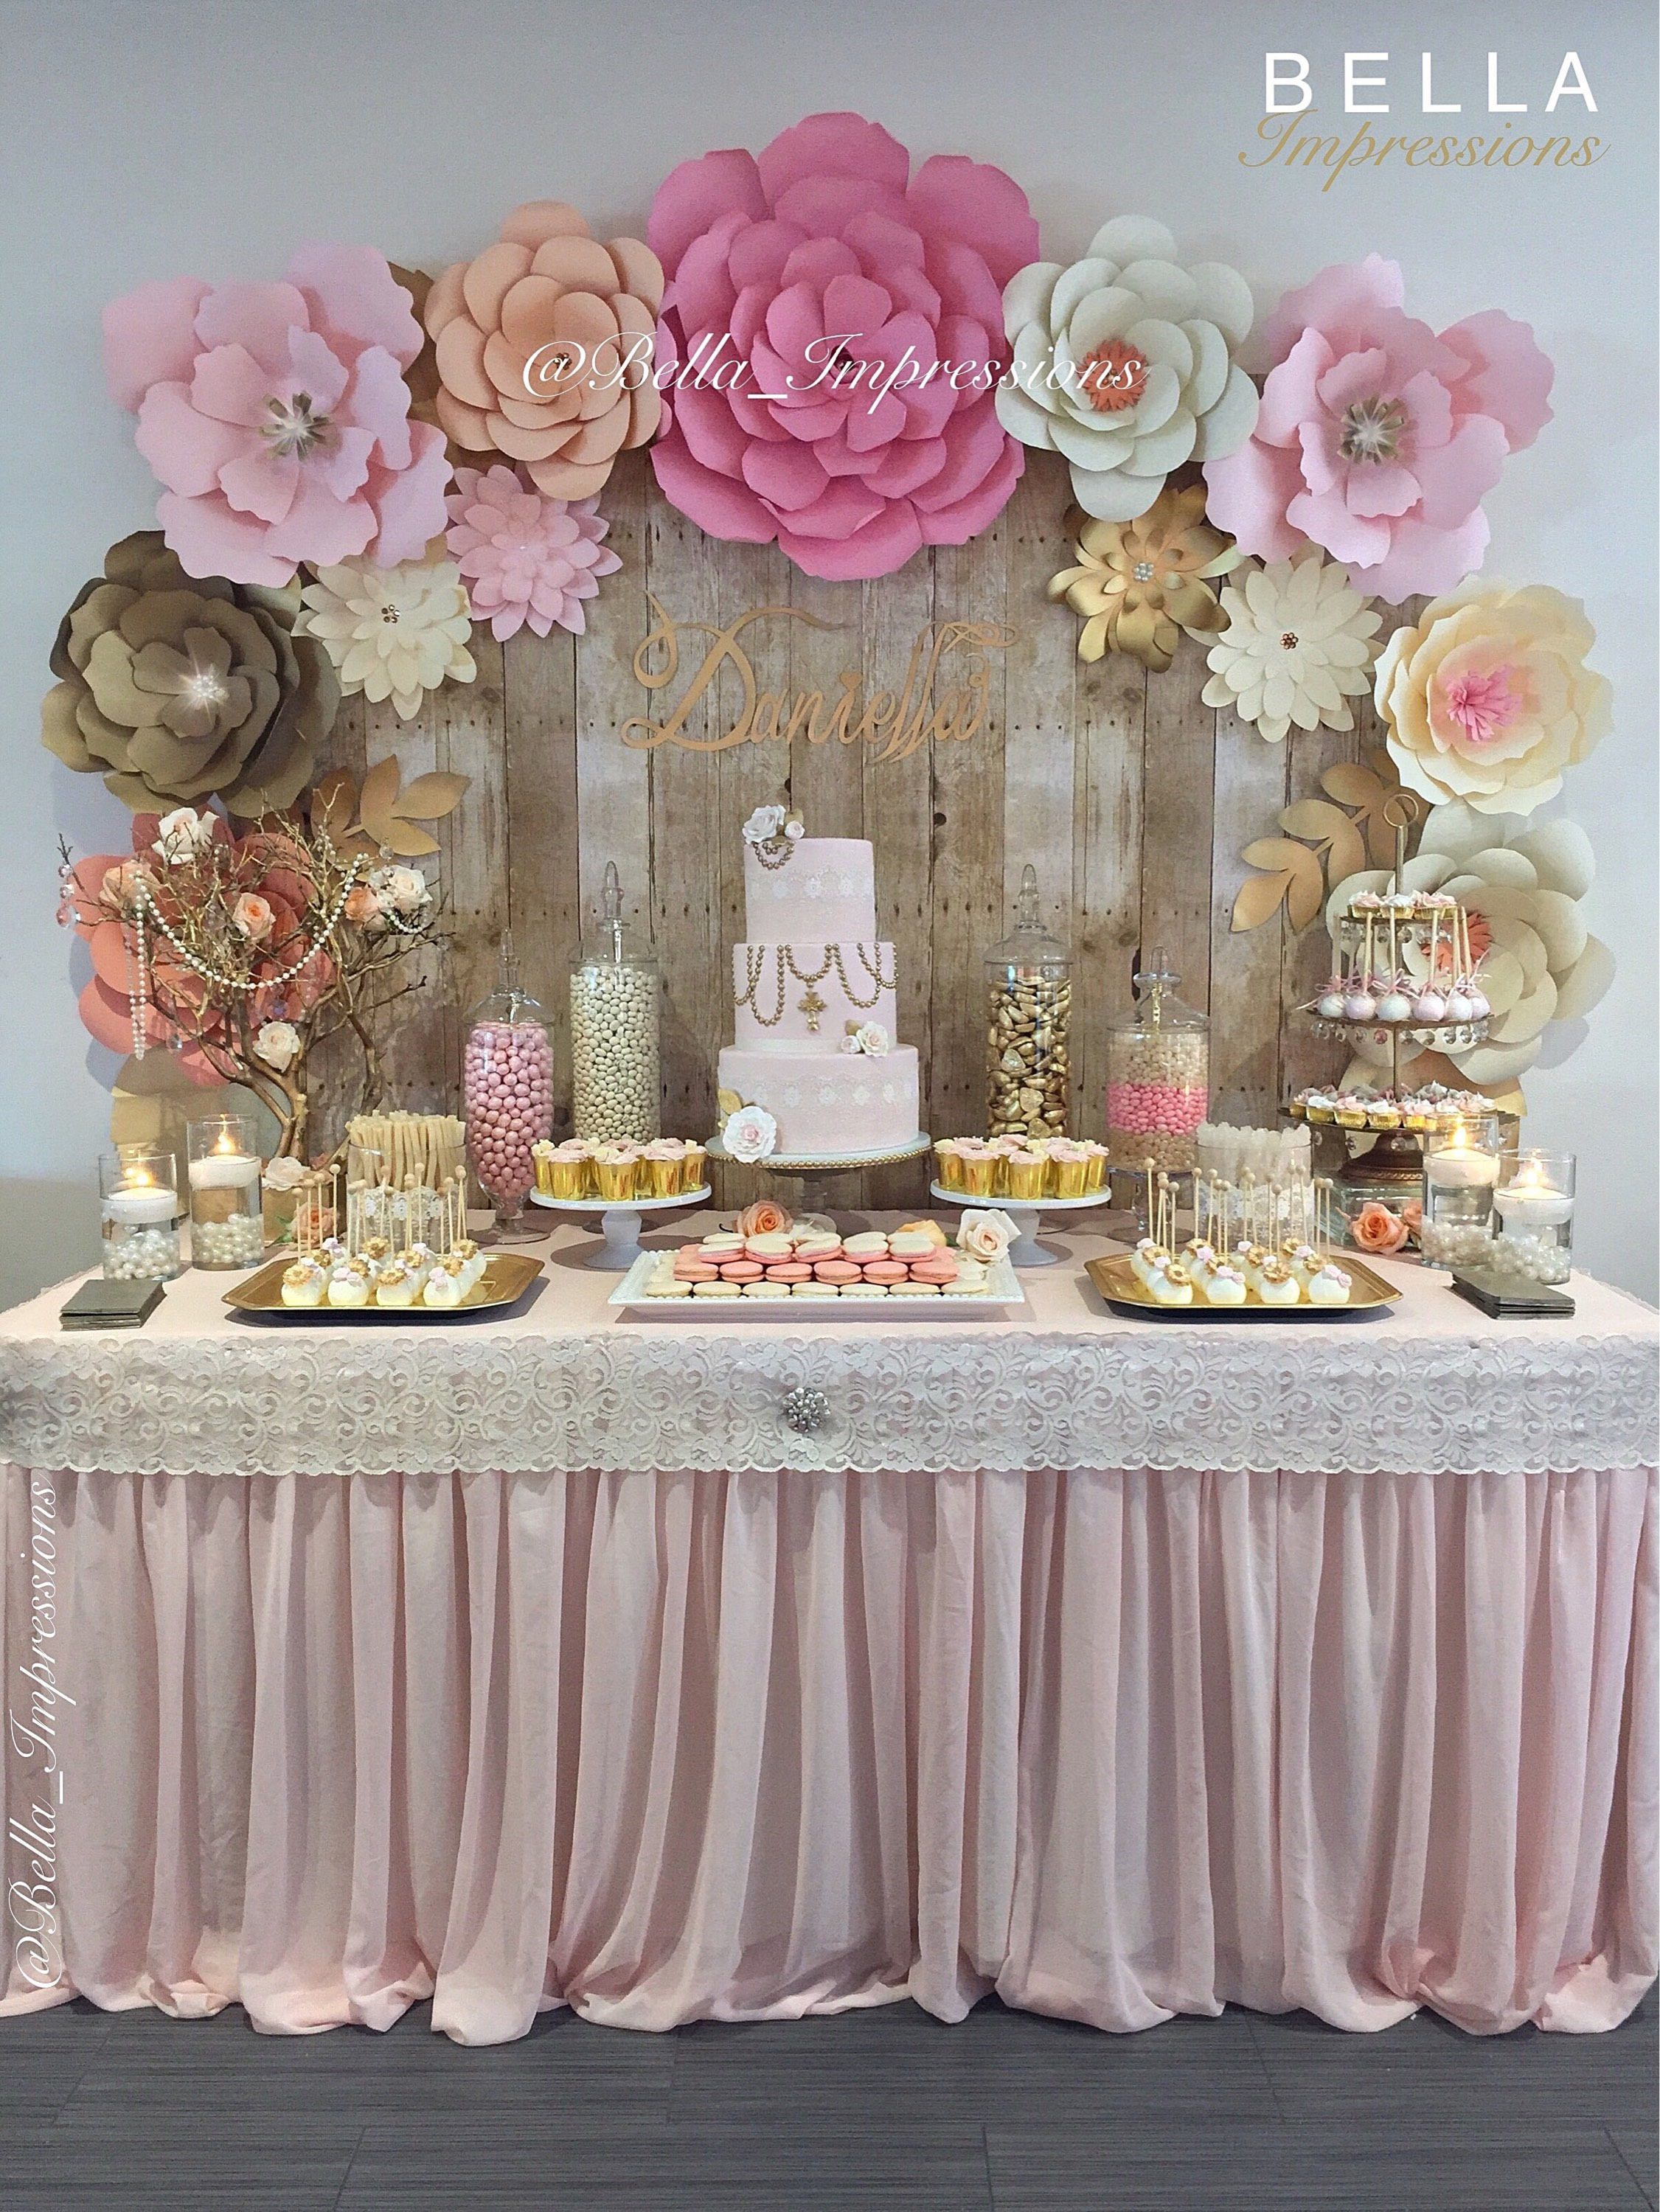 Wedding decorations rose gold october 2018  pcs  PAPER FLOWER BACKDROP  All flowers in image  dessert